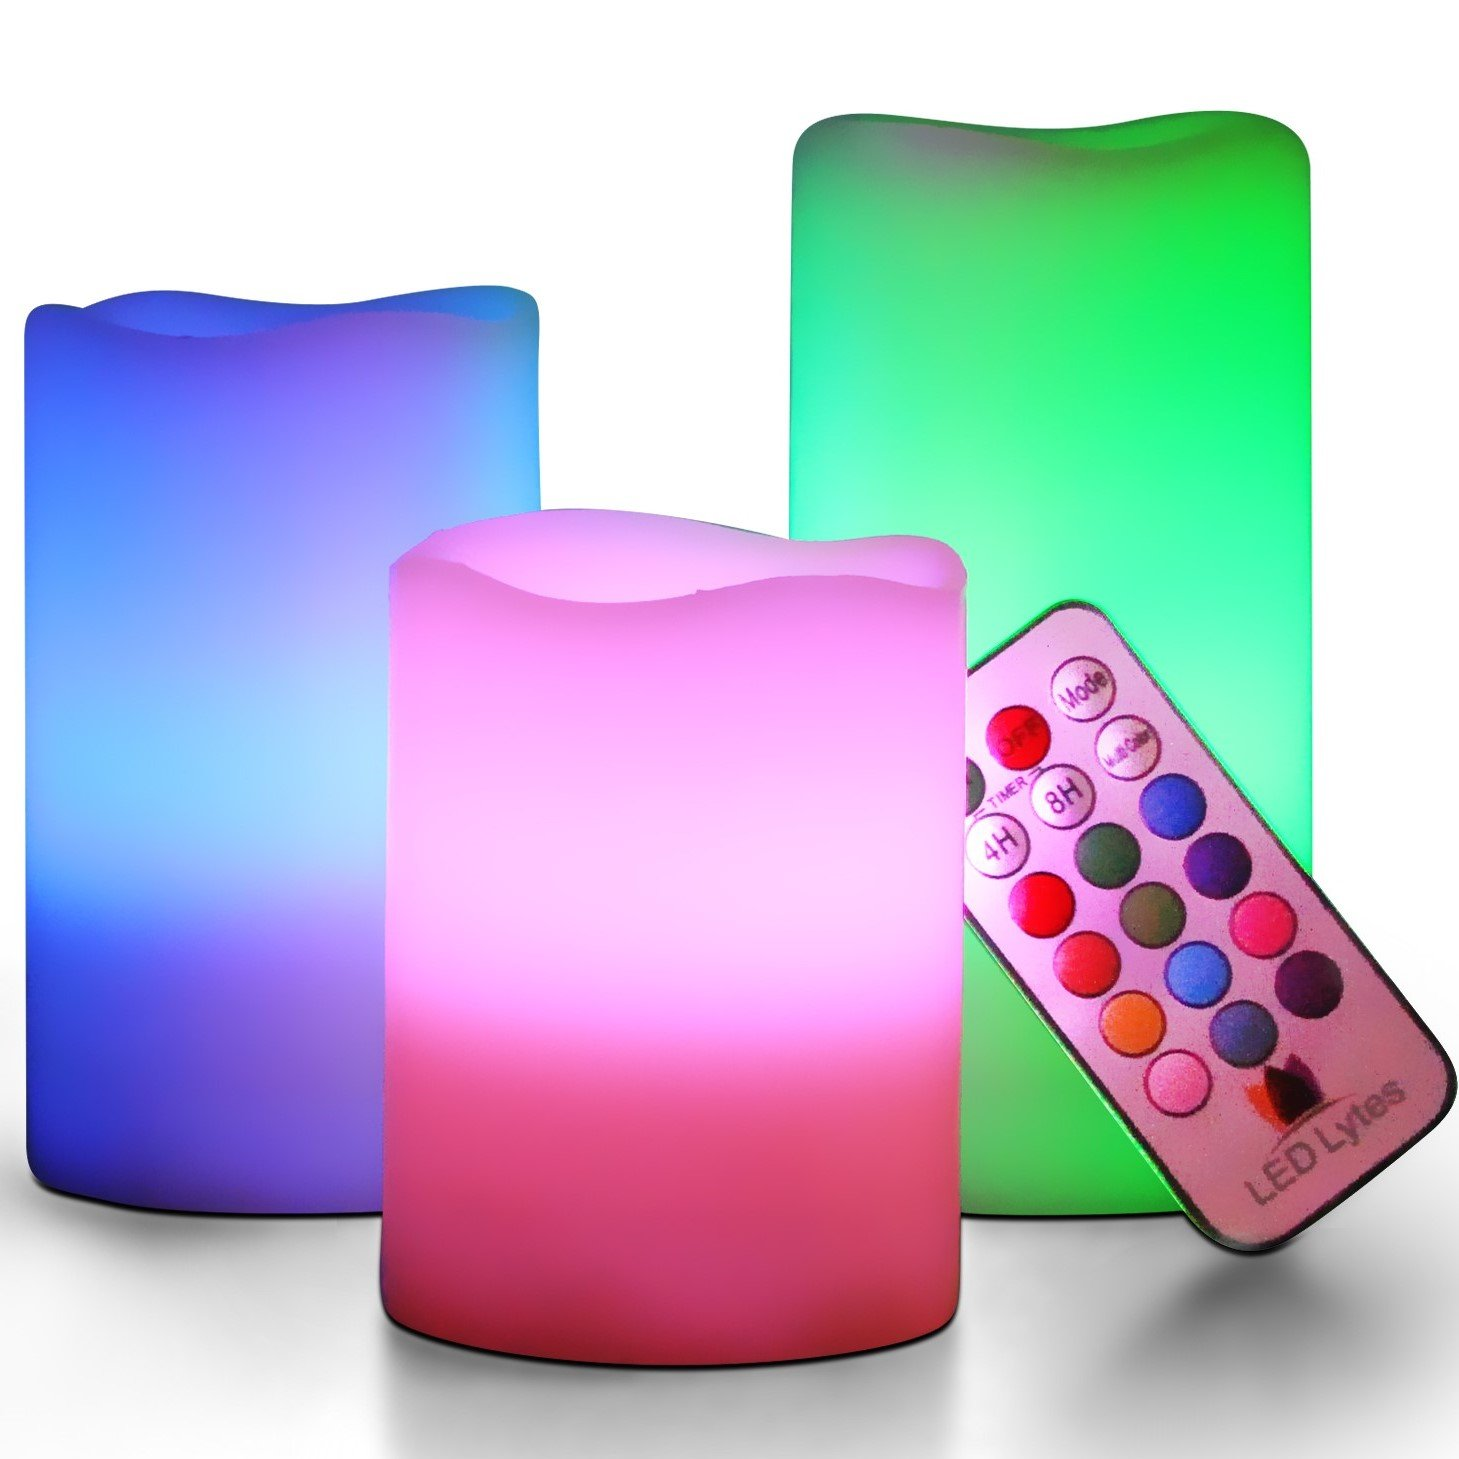 LED Lytes Flickering Flameless Candles - Battery Operated Candles Vanilla Scented Set of 3 Round Ivory Wax Flickering Multi Colored Flame, auto-Off Timer Remote Control Weddings Gifts